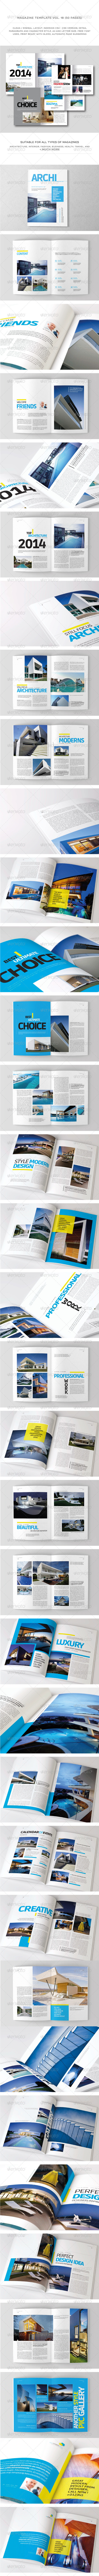 A4/Letter 50 Pages Mgz (Vol. 18) - Magazines Print Templates